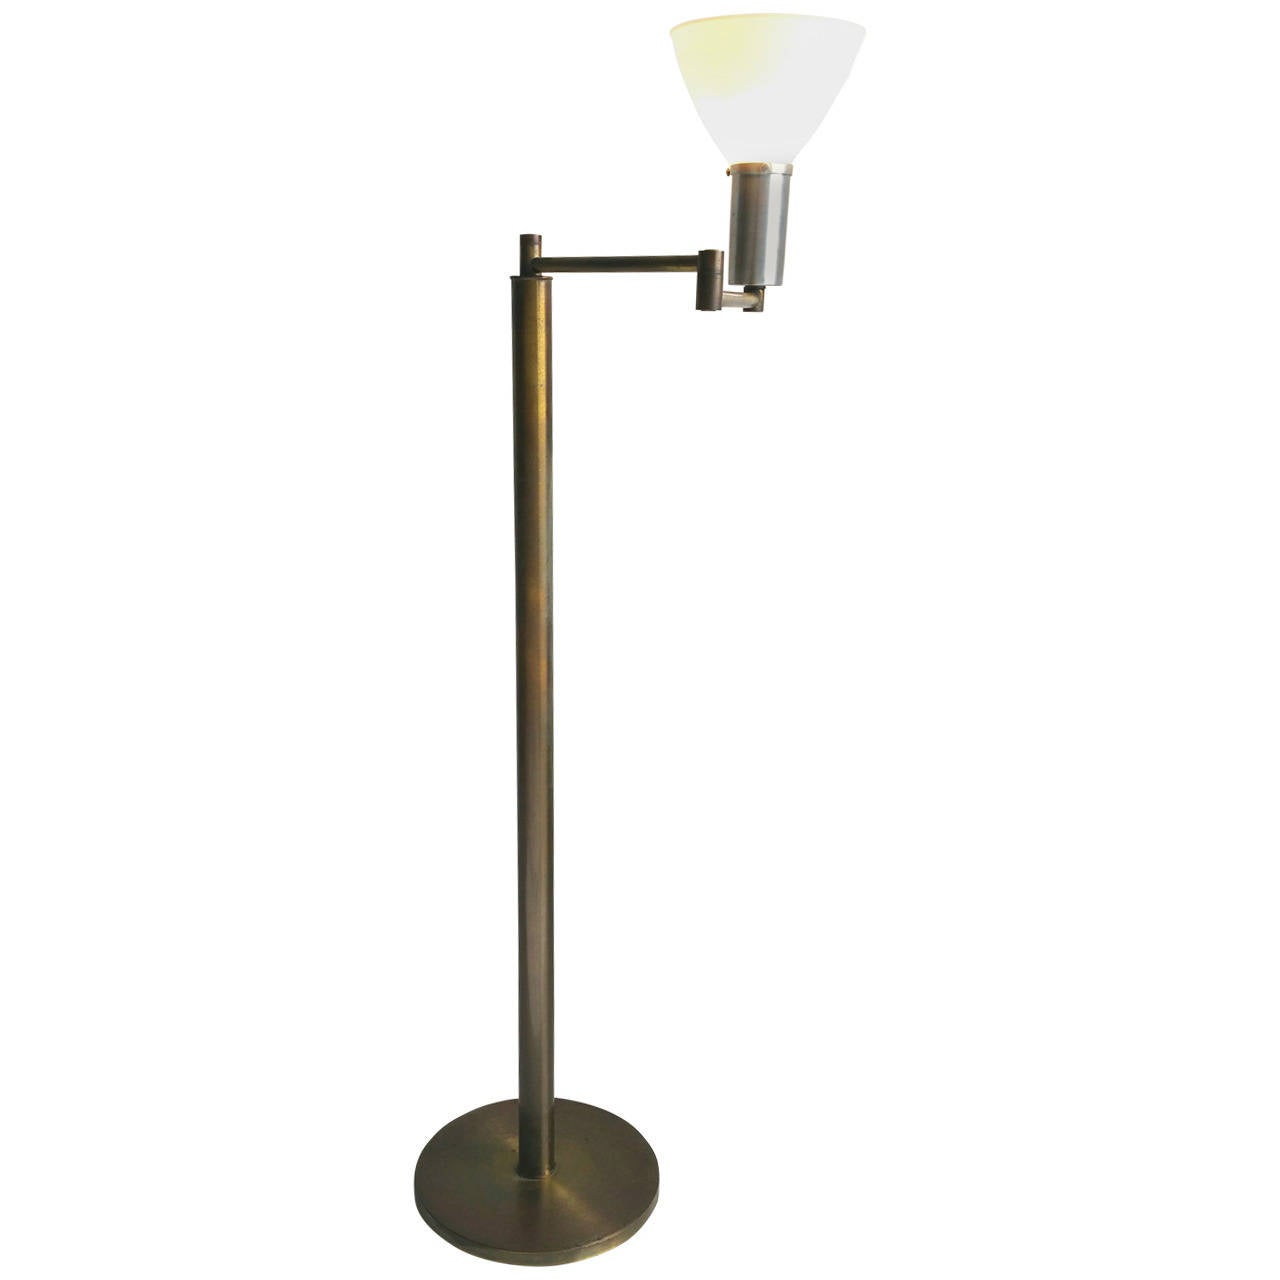 Early 1930s bauhaus swing arm floor lamp by walter von for Bauhaus lampen